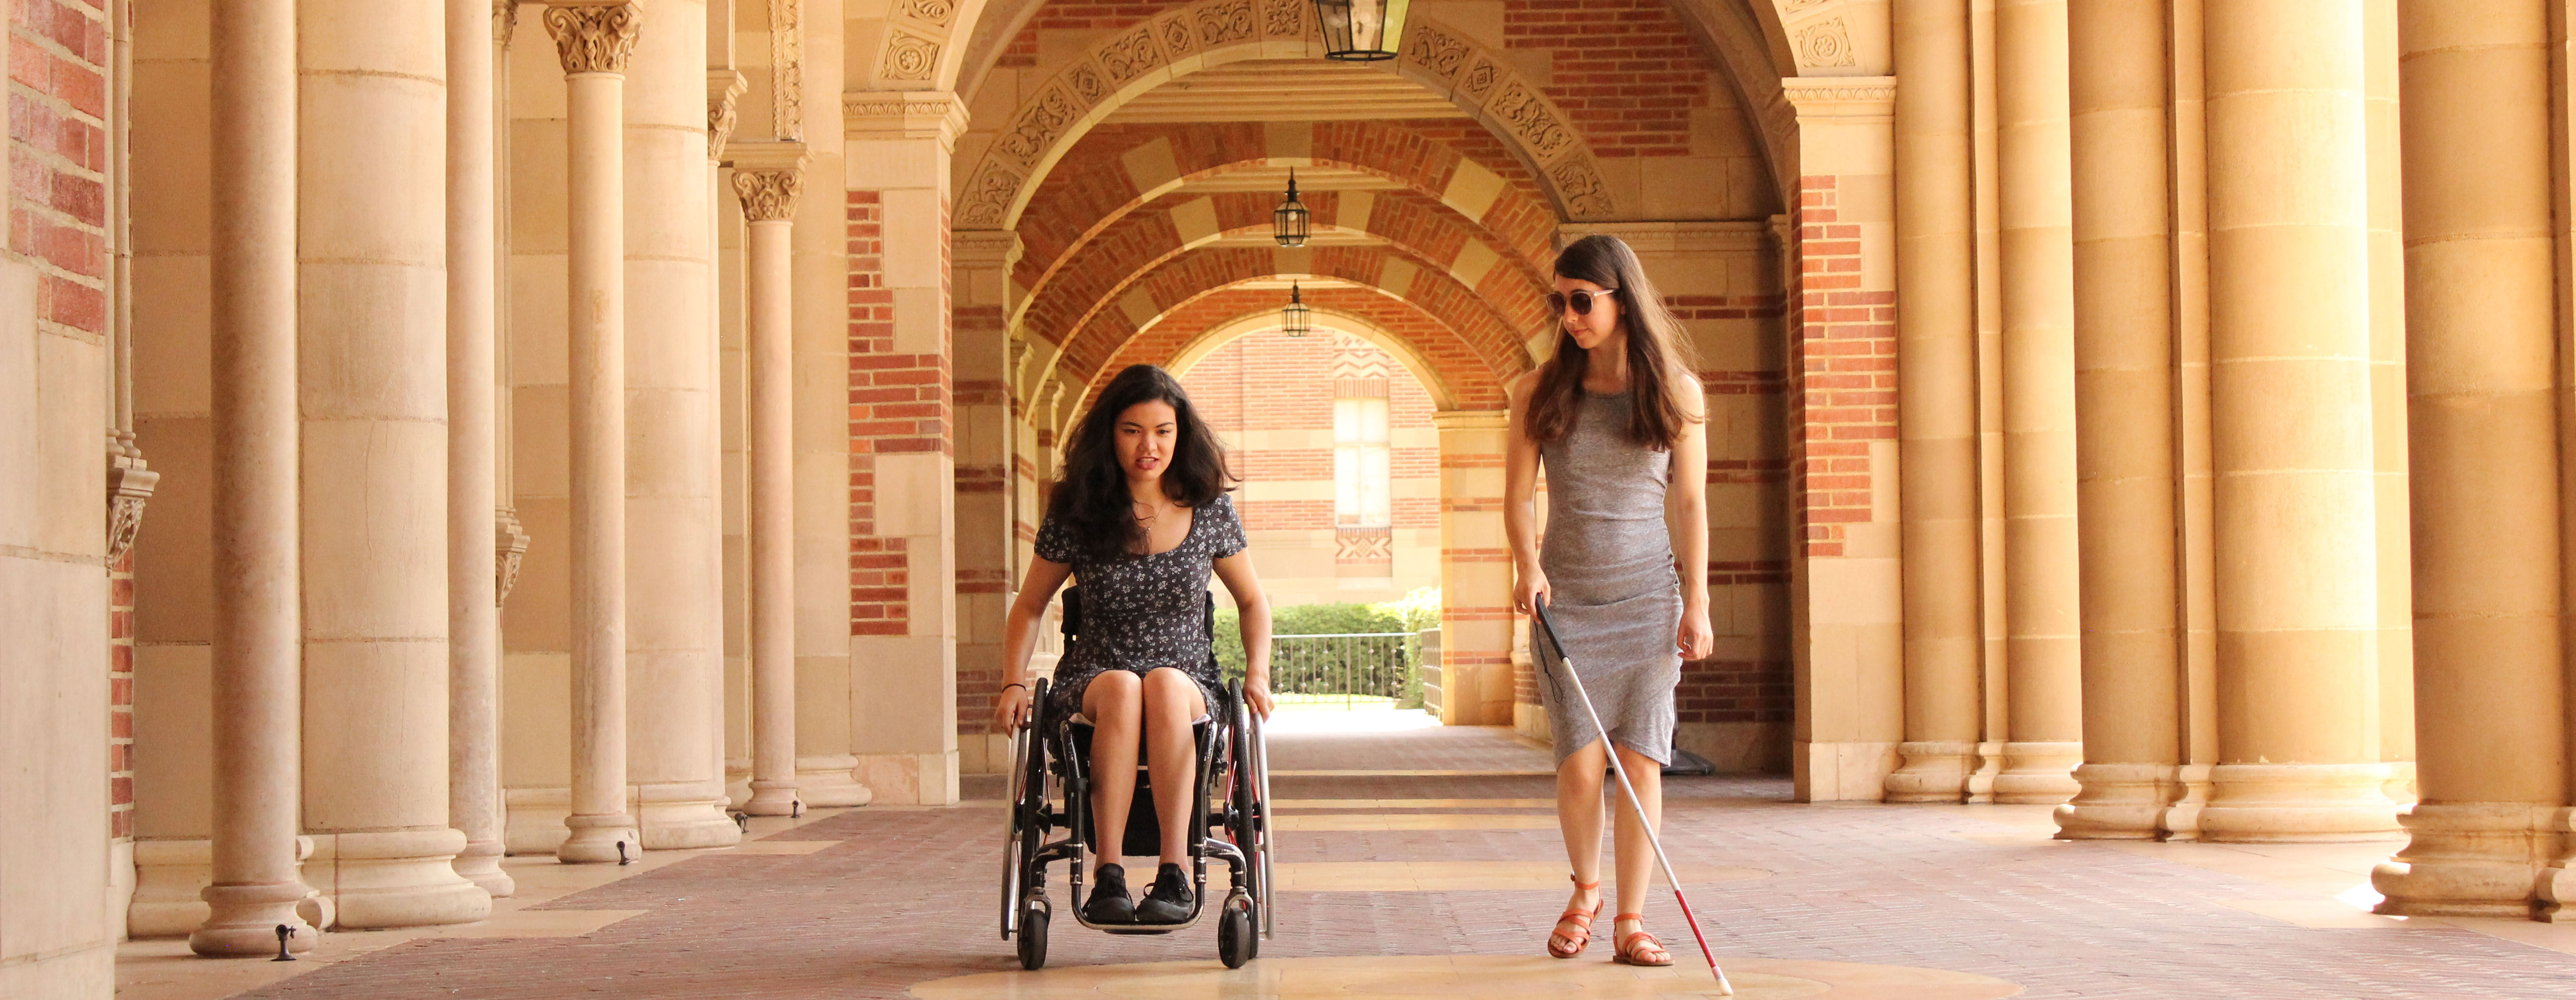 Carolanne Link and Megan Borella by Royce Hall